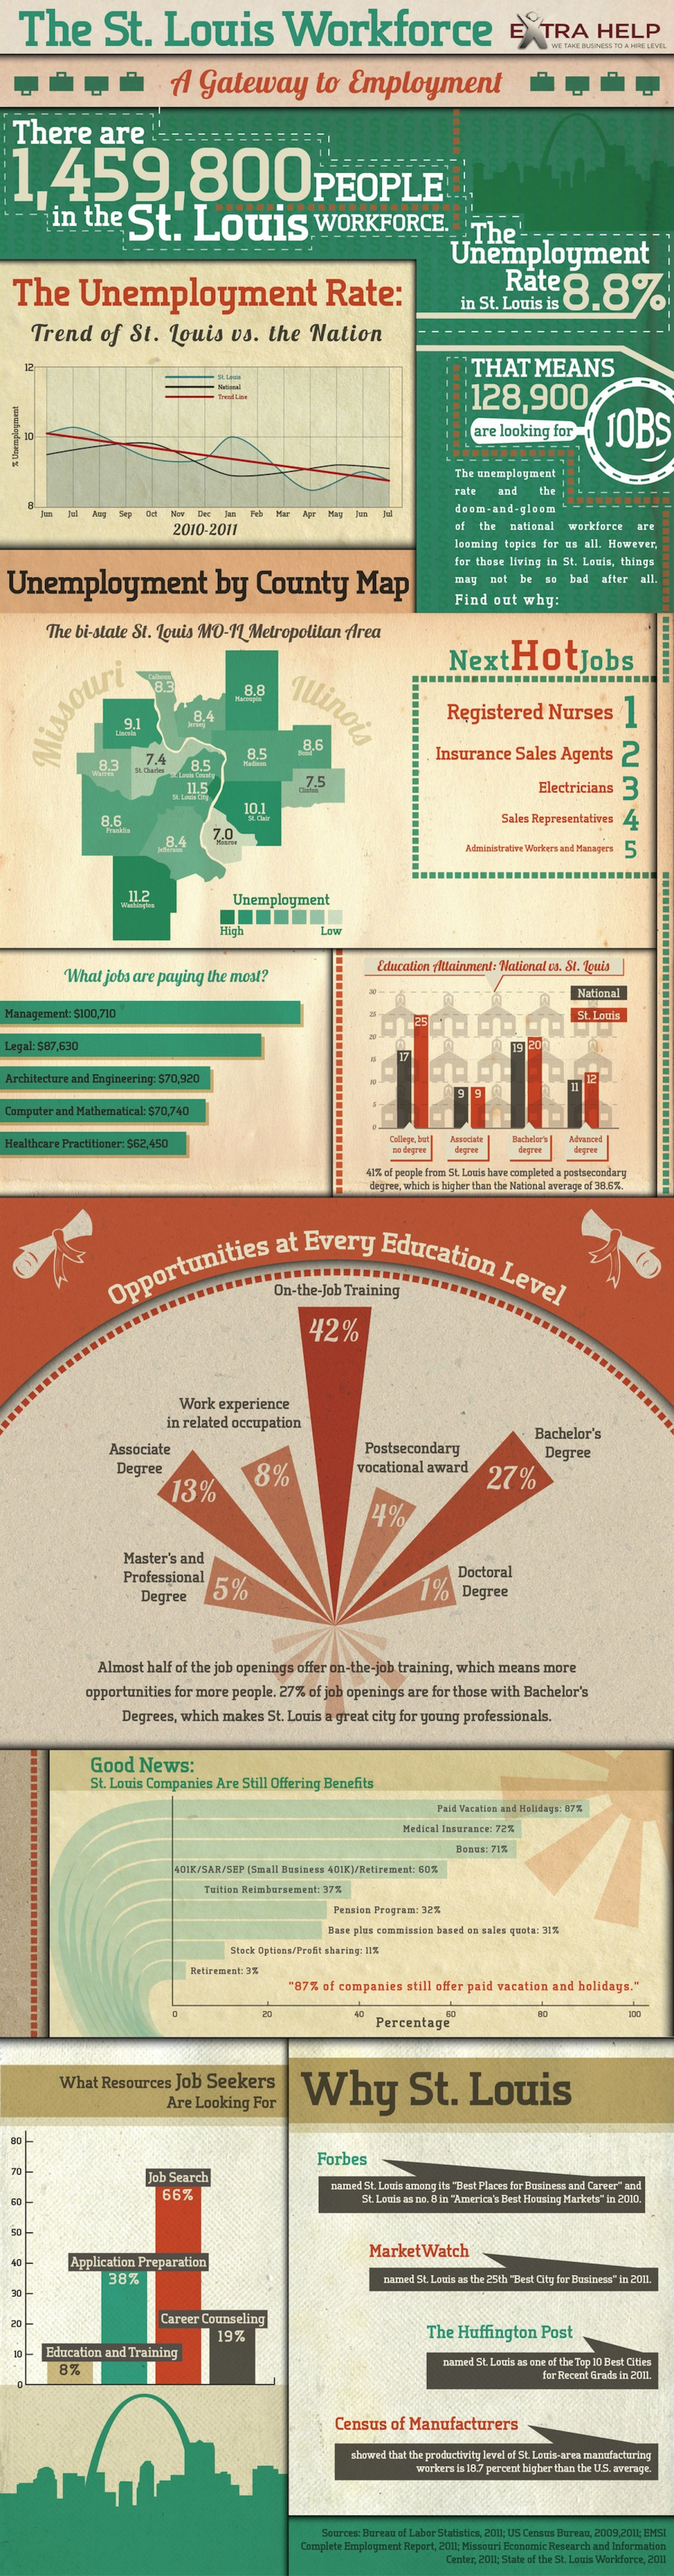 The St. Louis Workforce  Infographic